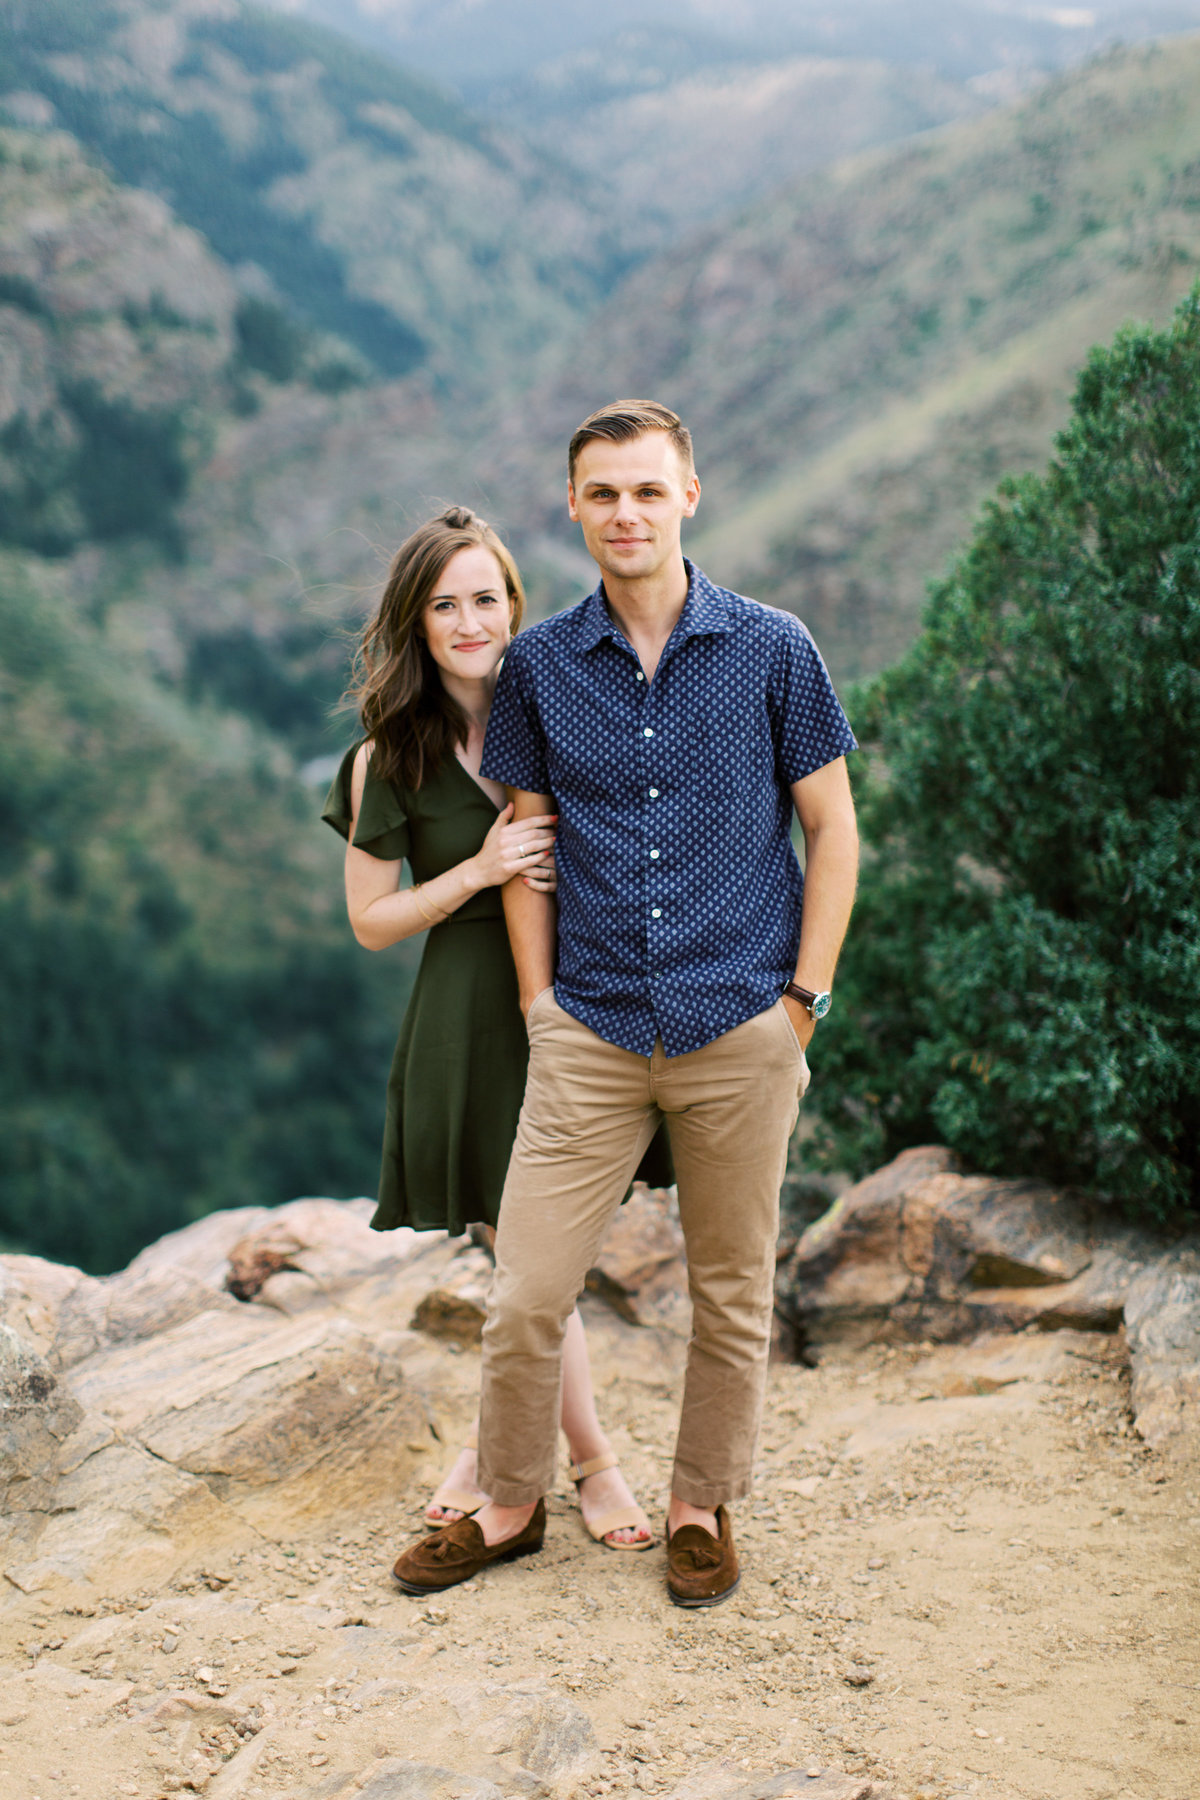 KristinPatrick_Engagement_July312019_145